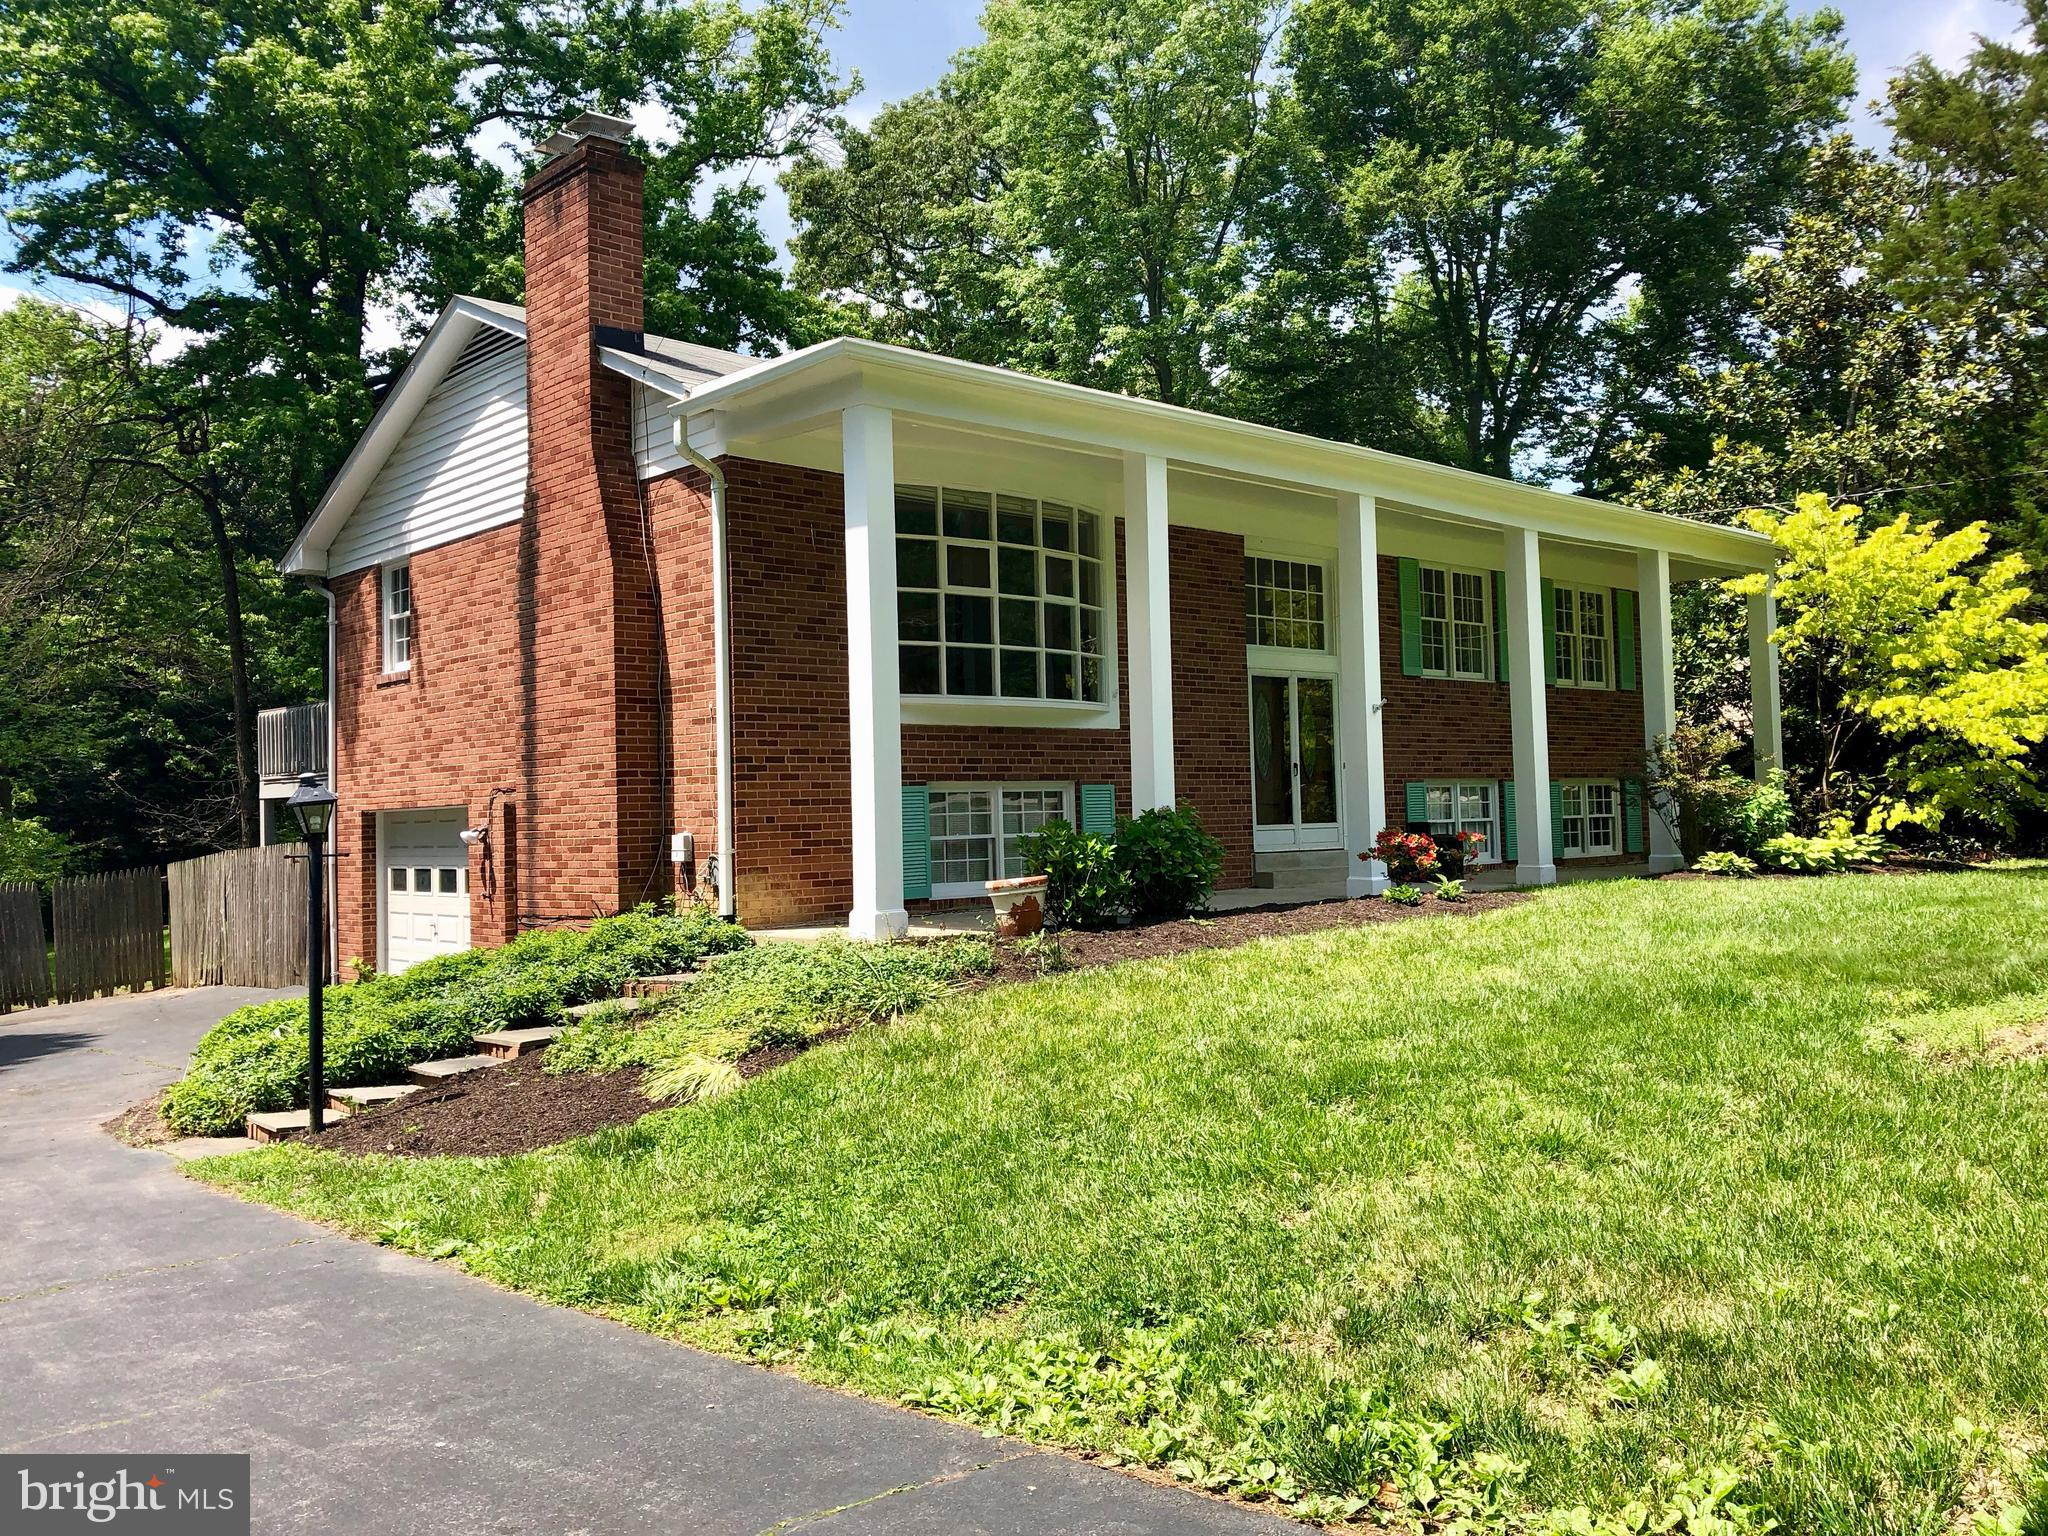 Spacious home is set on spectacular 3/4 acres overlooking Mt Vernon Estate grounds. Open floor plan, updated kitchen, master bedroom suite with walk-in closet, terrific lower level family room, recessed lights, hardwood floors, 2 fireplaces, garage. Incredible yard is your own private oasis..pool, patio, deck, plus a detached office/studio with heat/AC, tile floors & exposed beams. No pets, please.